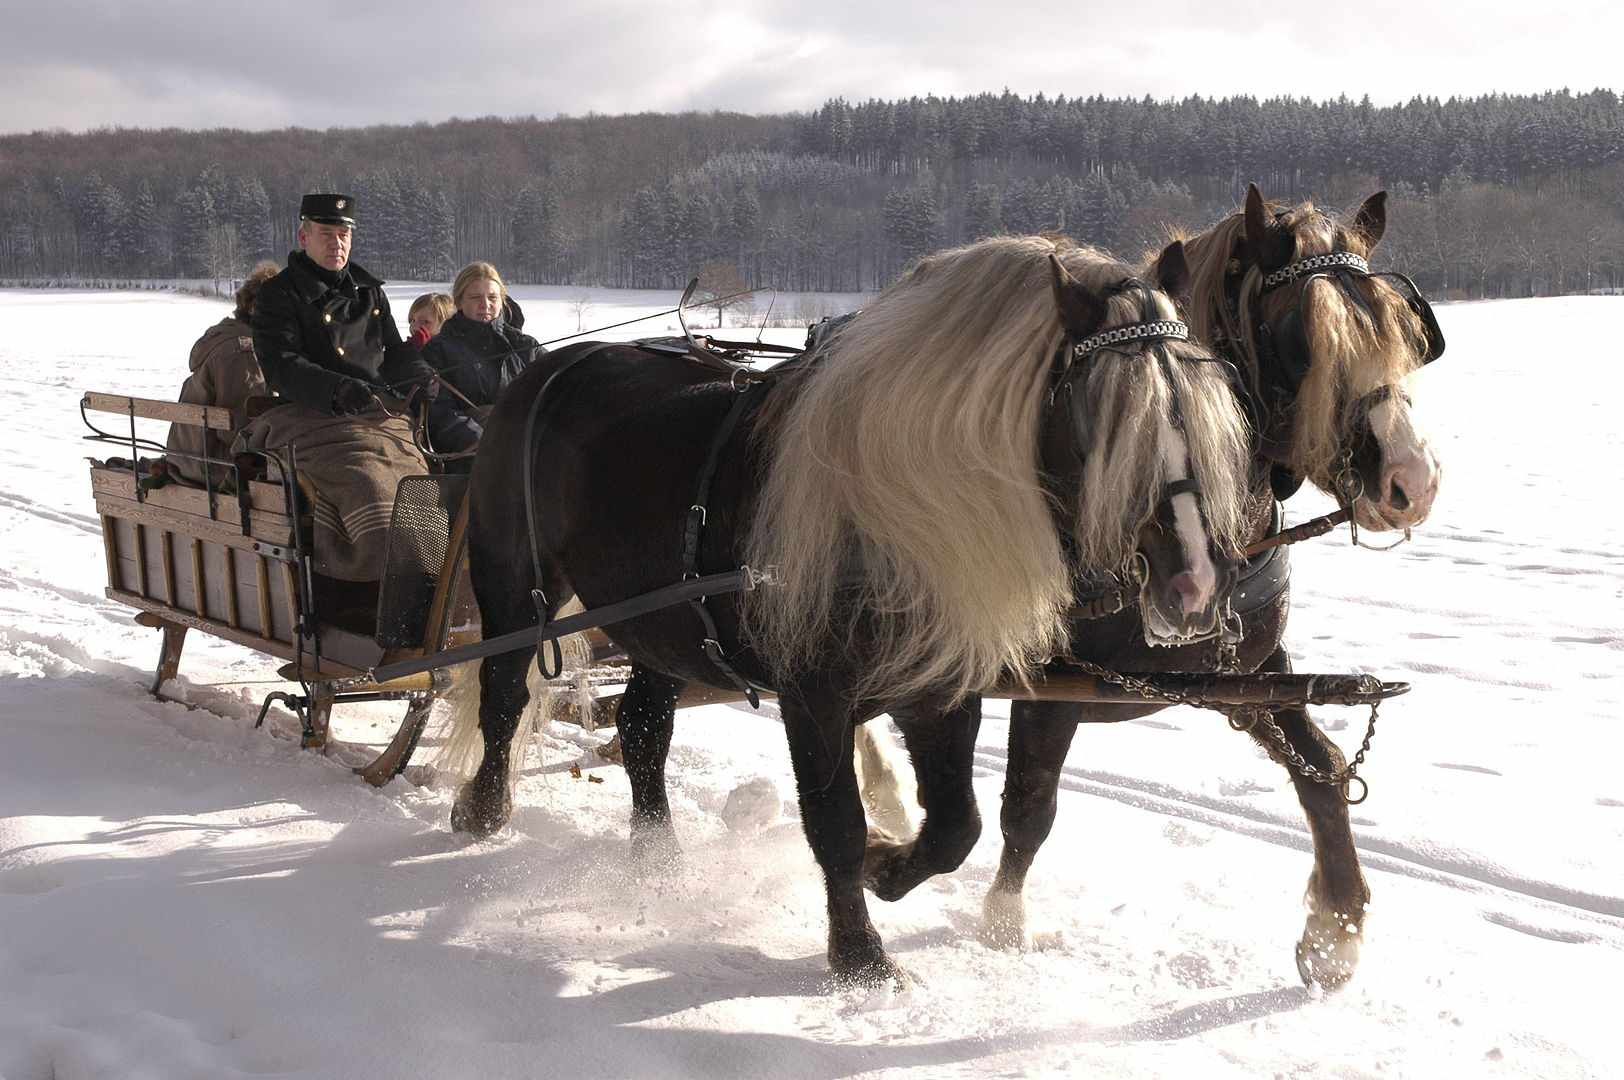 Two Black Forest horses pull a carriage with people in it